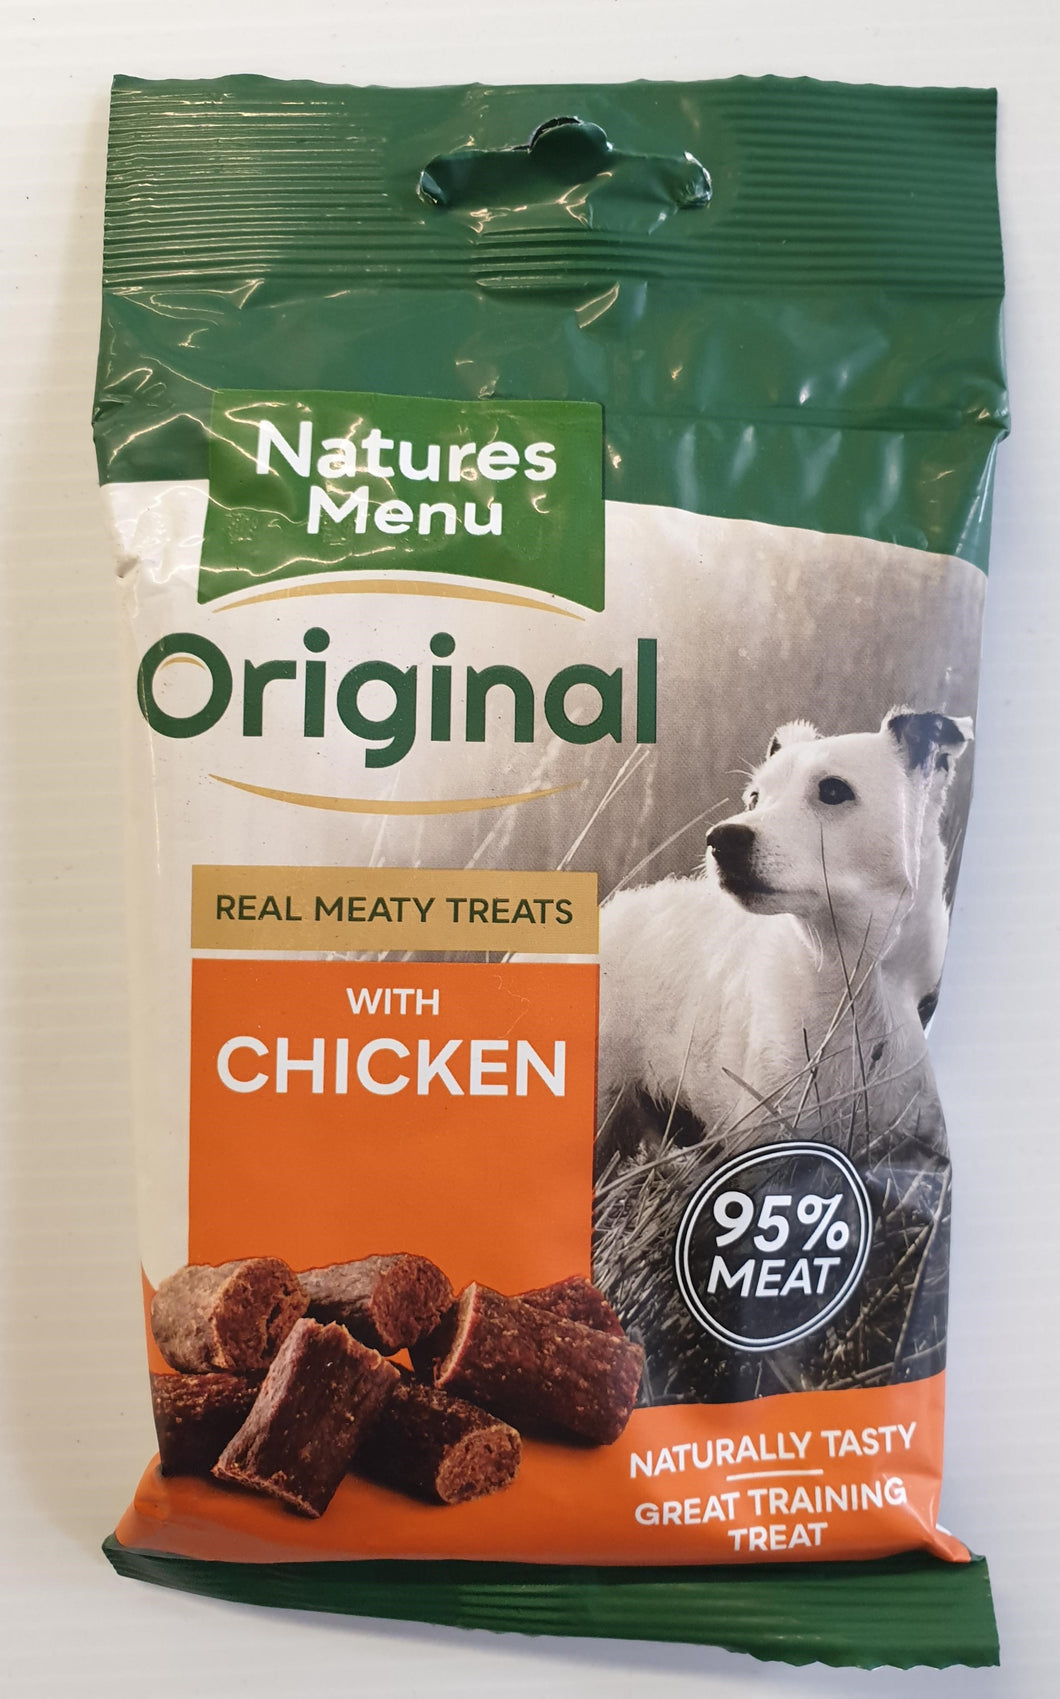 Natures Menu Training Treats - Chicken - Food for dogs, cats and other pets online | Northampton Raw Dog Food!